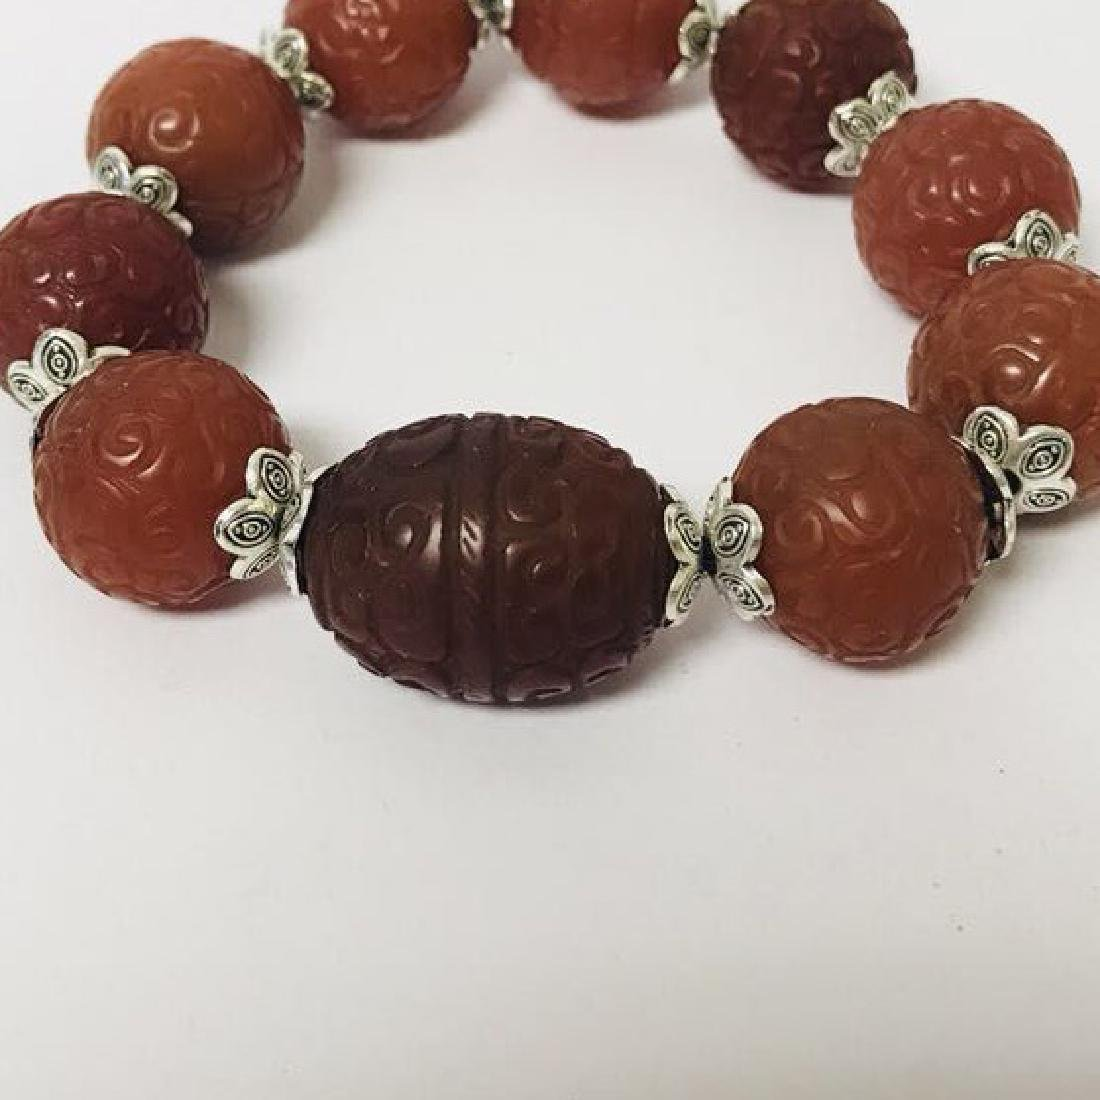 Southern Red Agate Bracelet